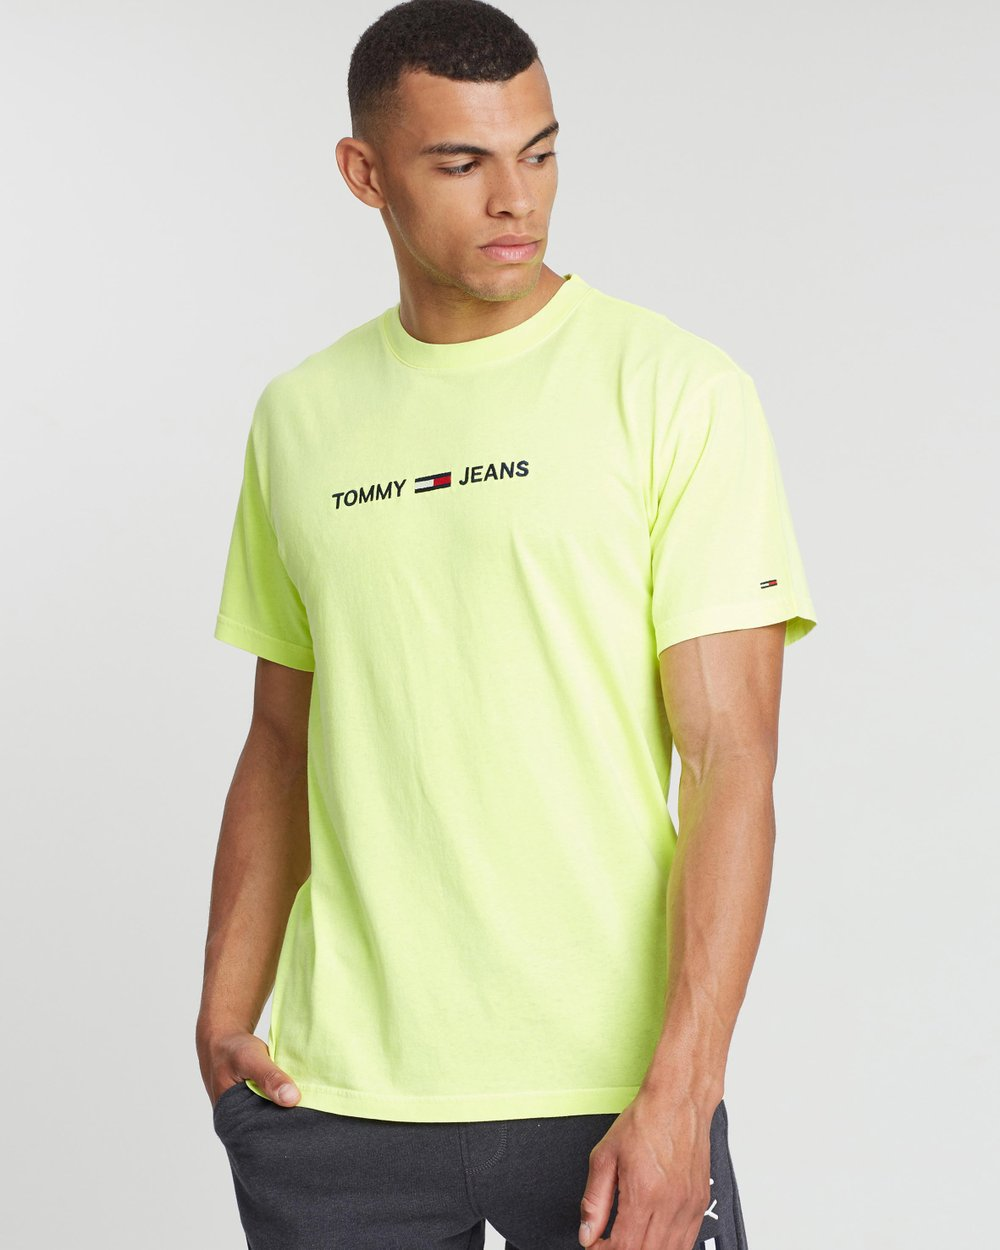 8a331f69a Small Text Tee by Tommy Jeans Online | THE ICONIC | Australia